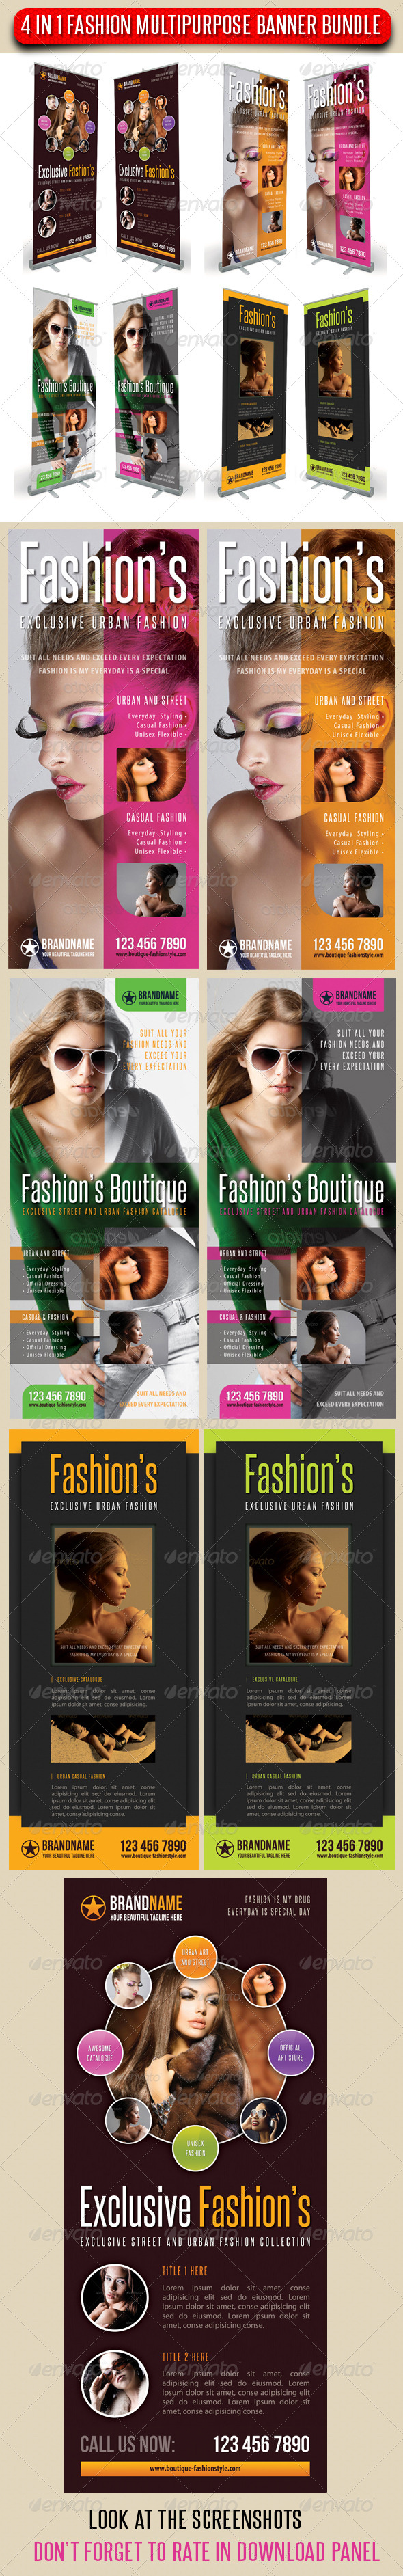 GraphicRiver 4 in 1 Fashion Multipurpose Banner Bundle 09 7437040